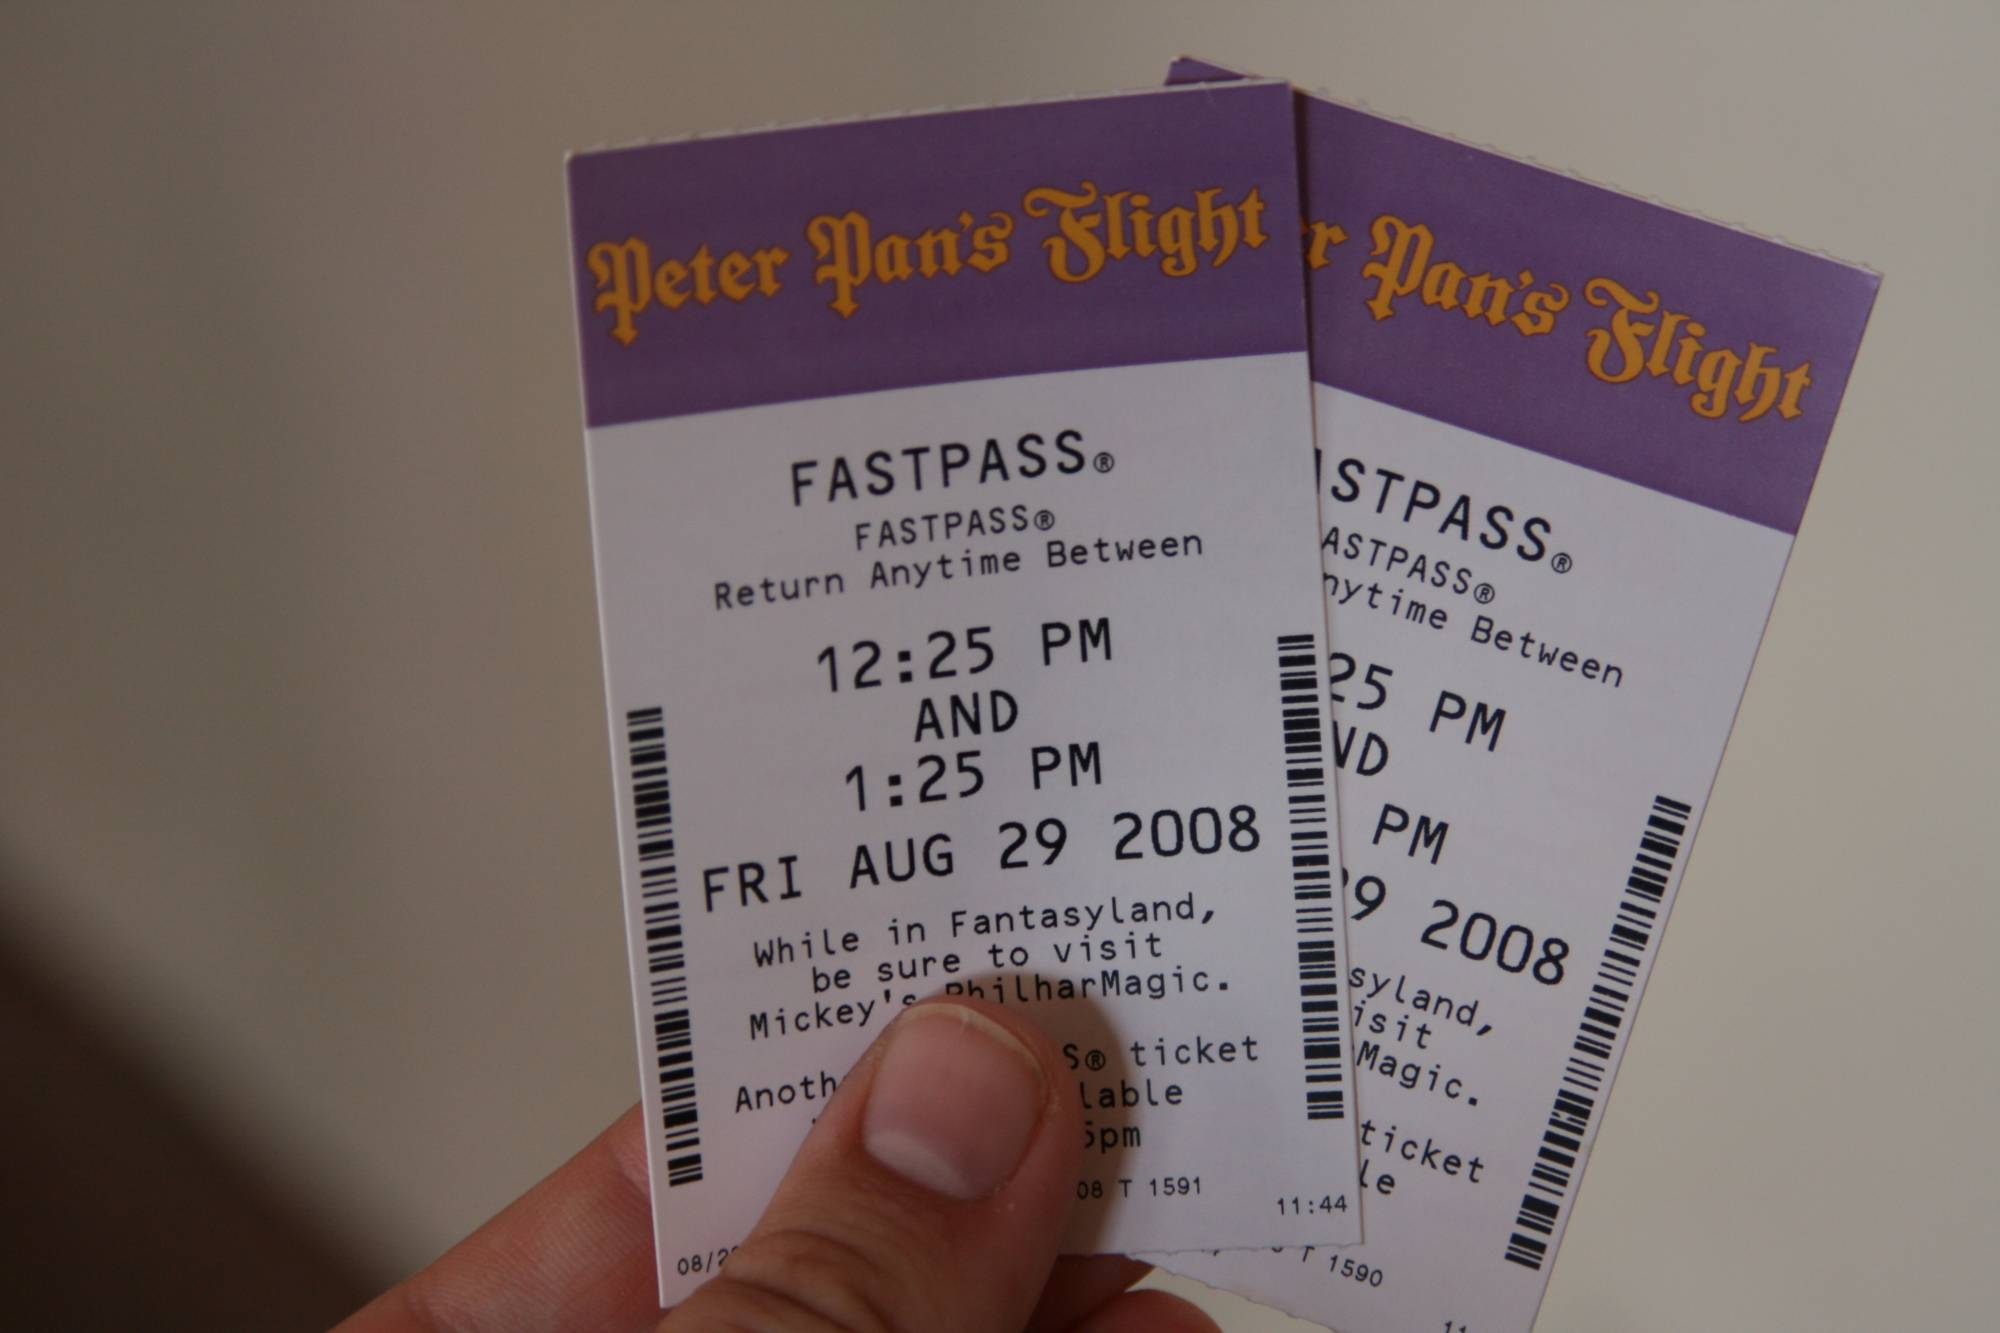 Magic Kingdom - Peter Pan's Fastpass Tickets photo